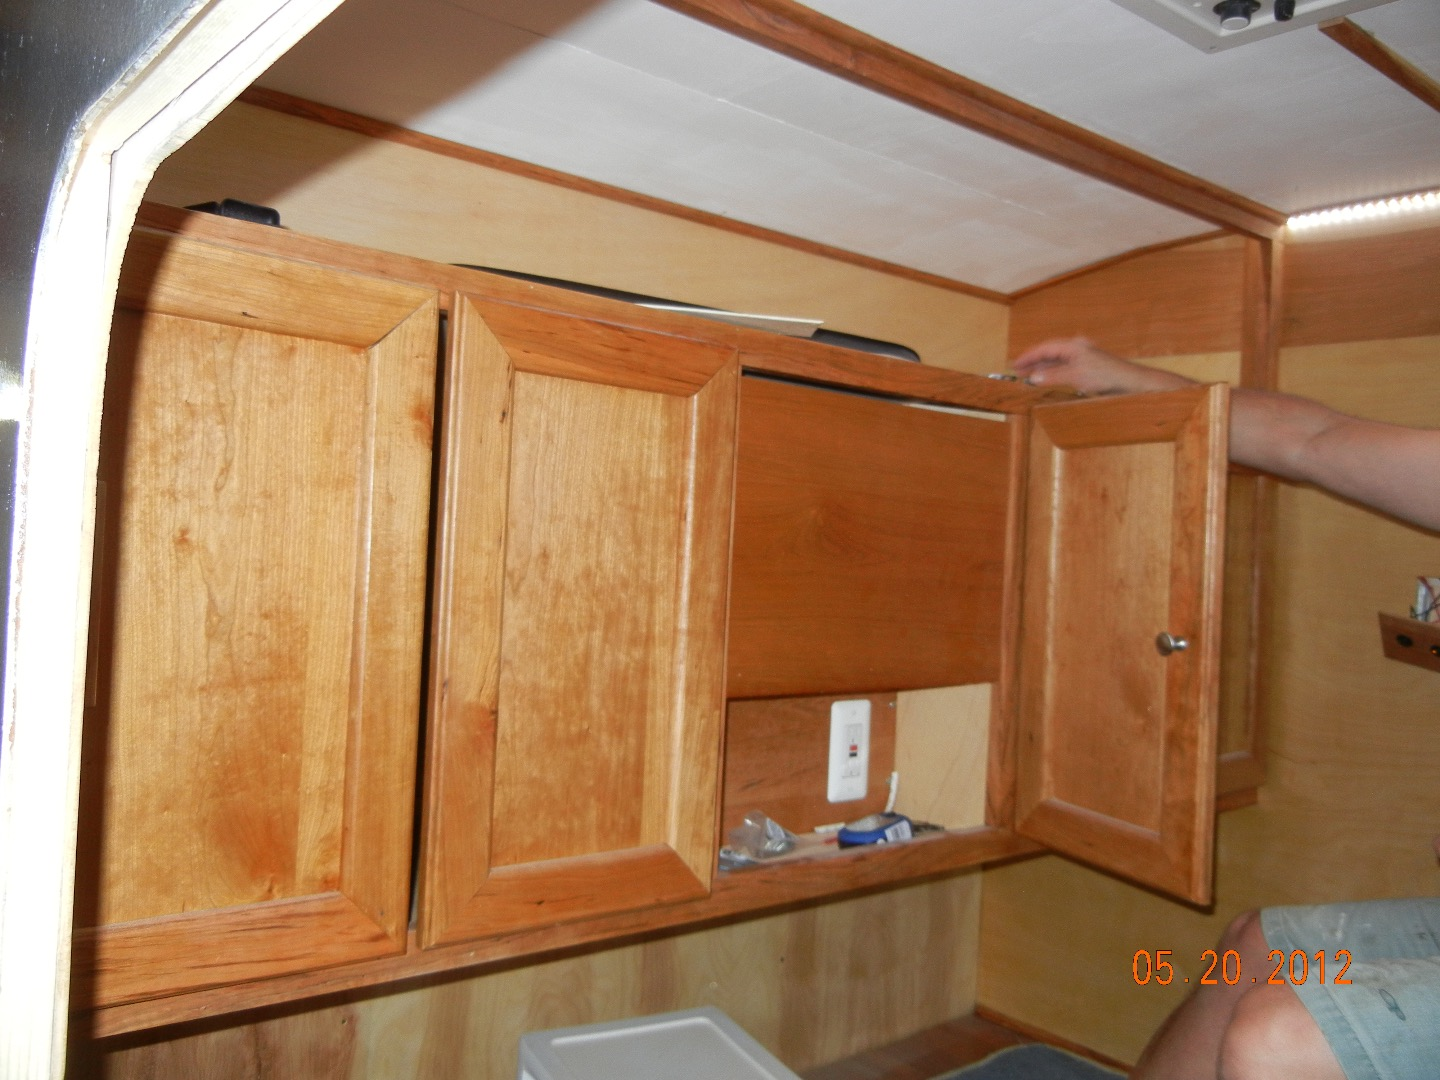 Picture of Sealing / Finishing the Interior